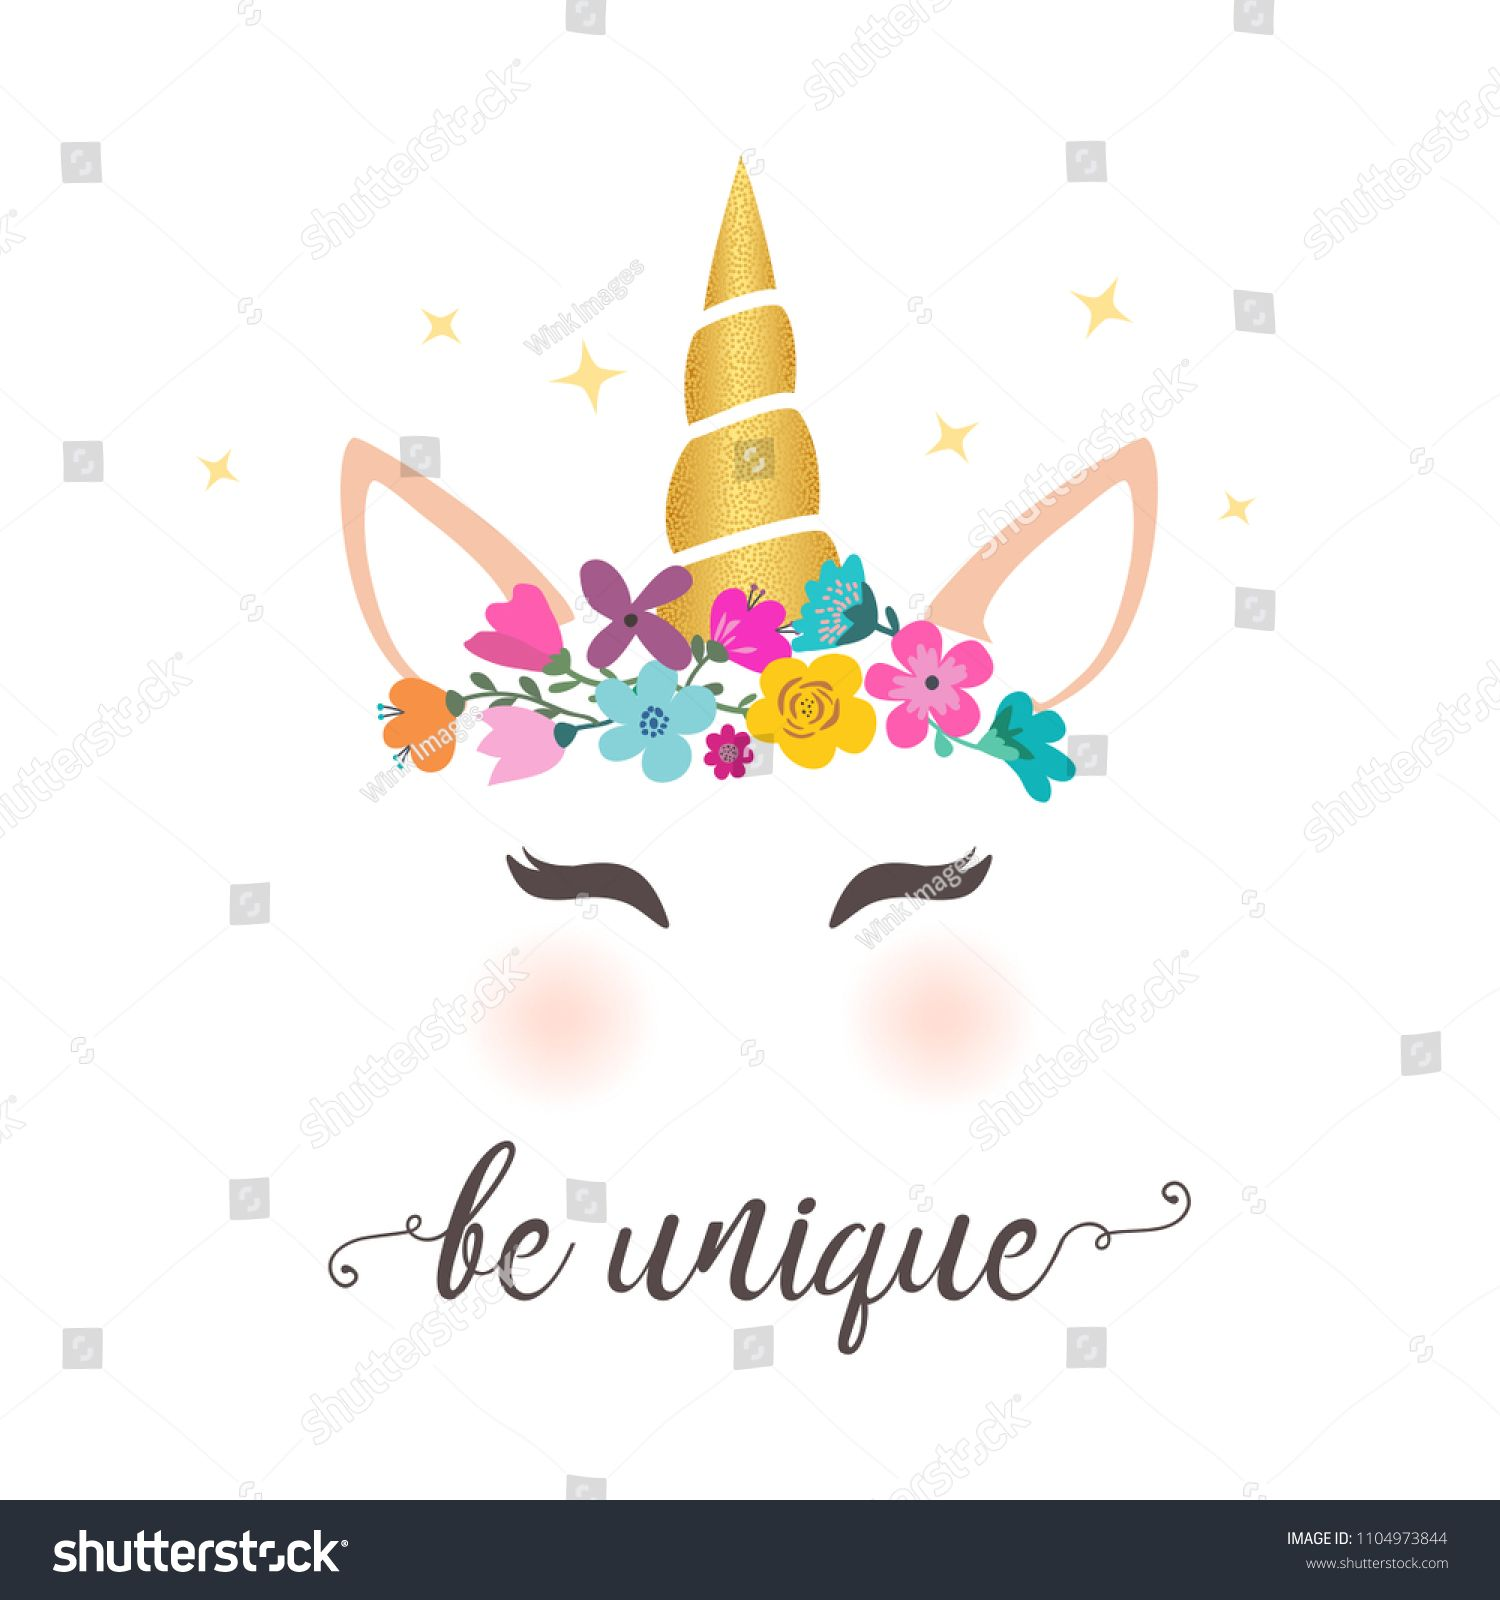 Cute Unicorn Vector Graphic Design Cartoon Unicorn Head With Flower Crown Illustration And Inscription Be Uniq Crown Illustration Cartoon Unicorn Cute Unicorn Cartoon earth with flower crown decor clipart vector royalty free how to draw a flower crown i draw fashion youtube flower crown royalty free vector image vectorstock 7pair ear clip on. cute unicorn vector graphic design